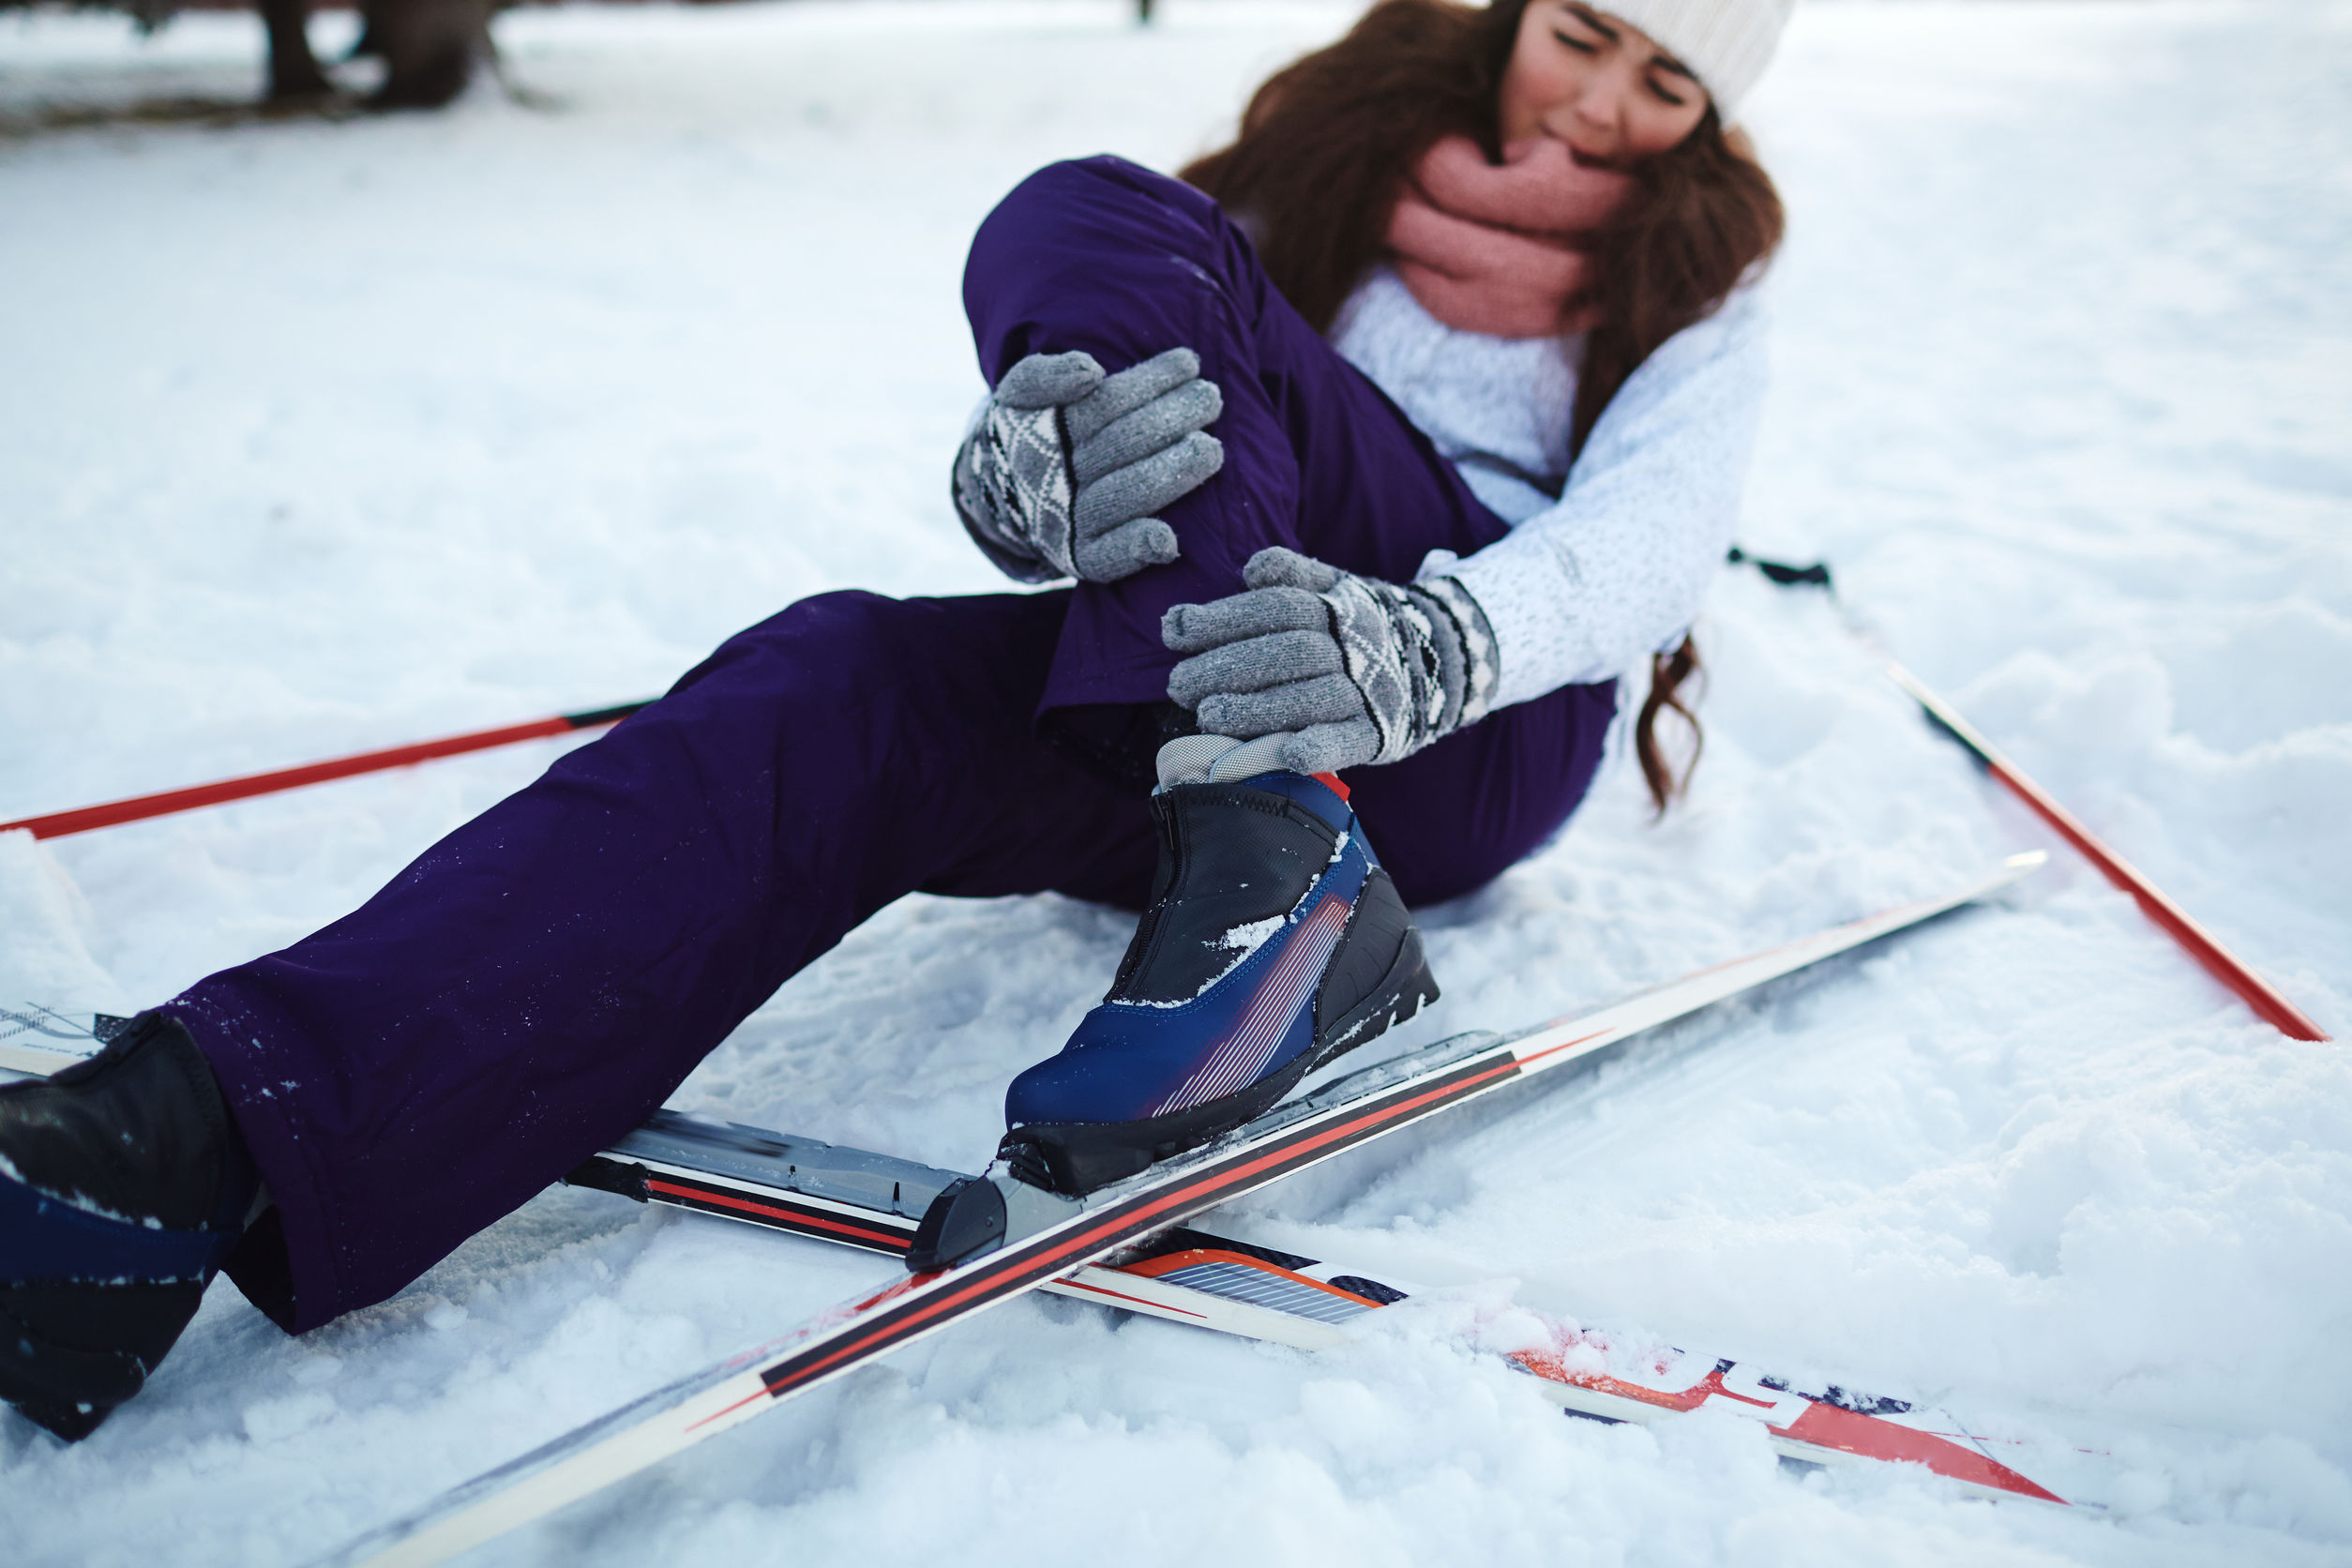 active female fell down on snow during ski training